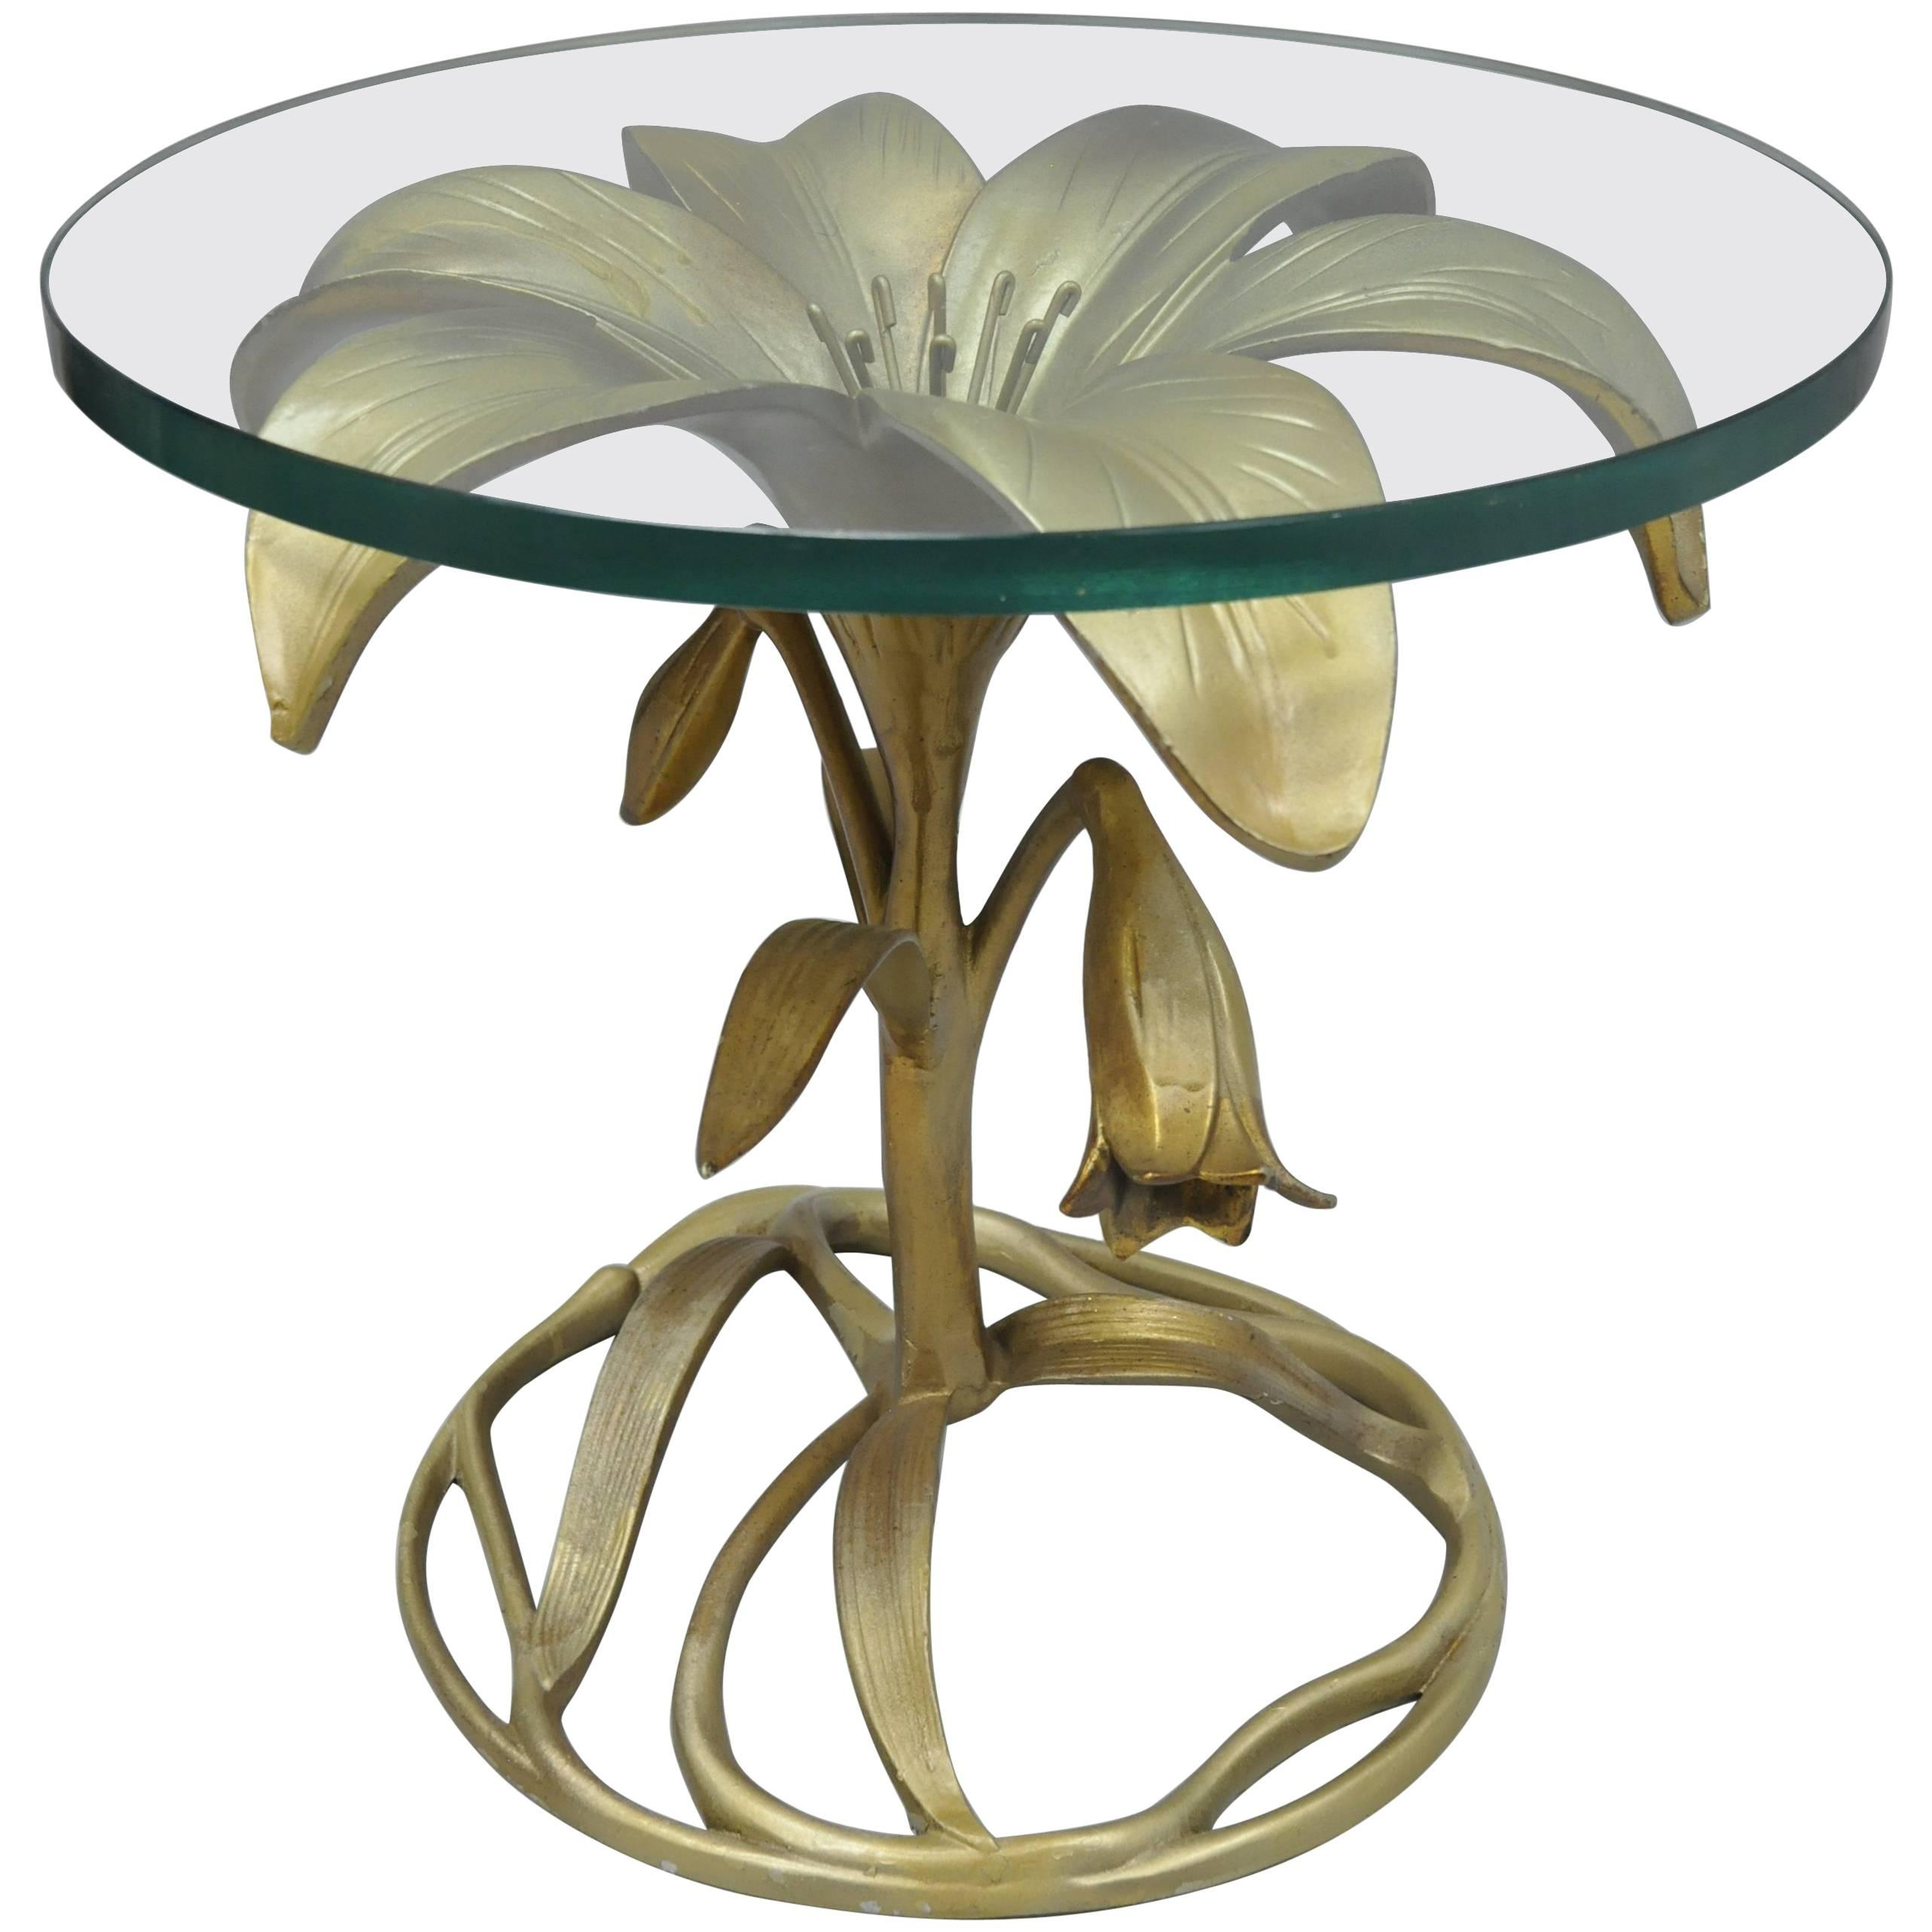 arthur court lily leaf gold flower side end table round glass top master butterfly accent cast aluminum oval cover reading chair for bedroom high set unique home decor small drop